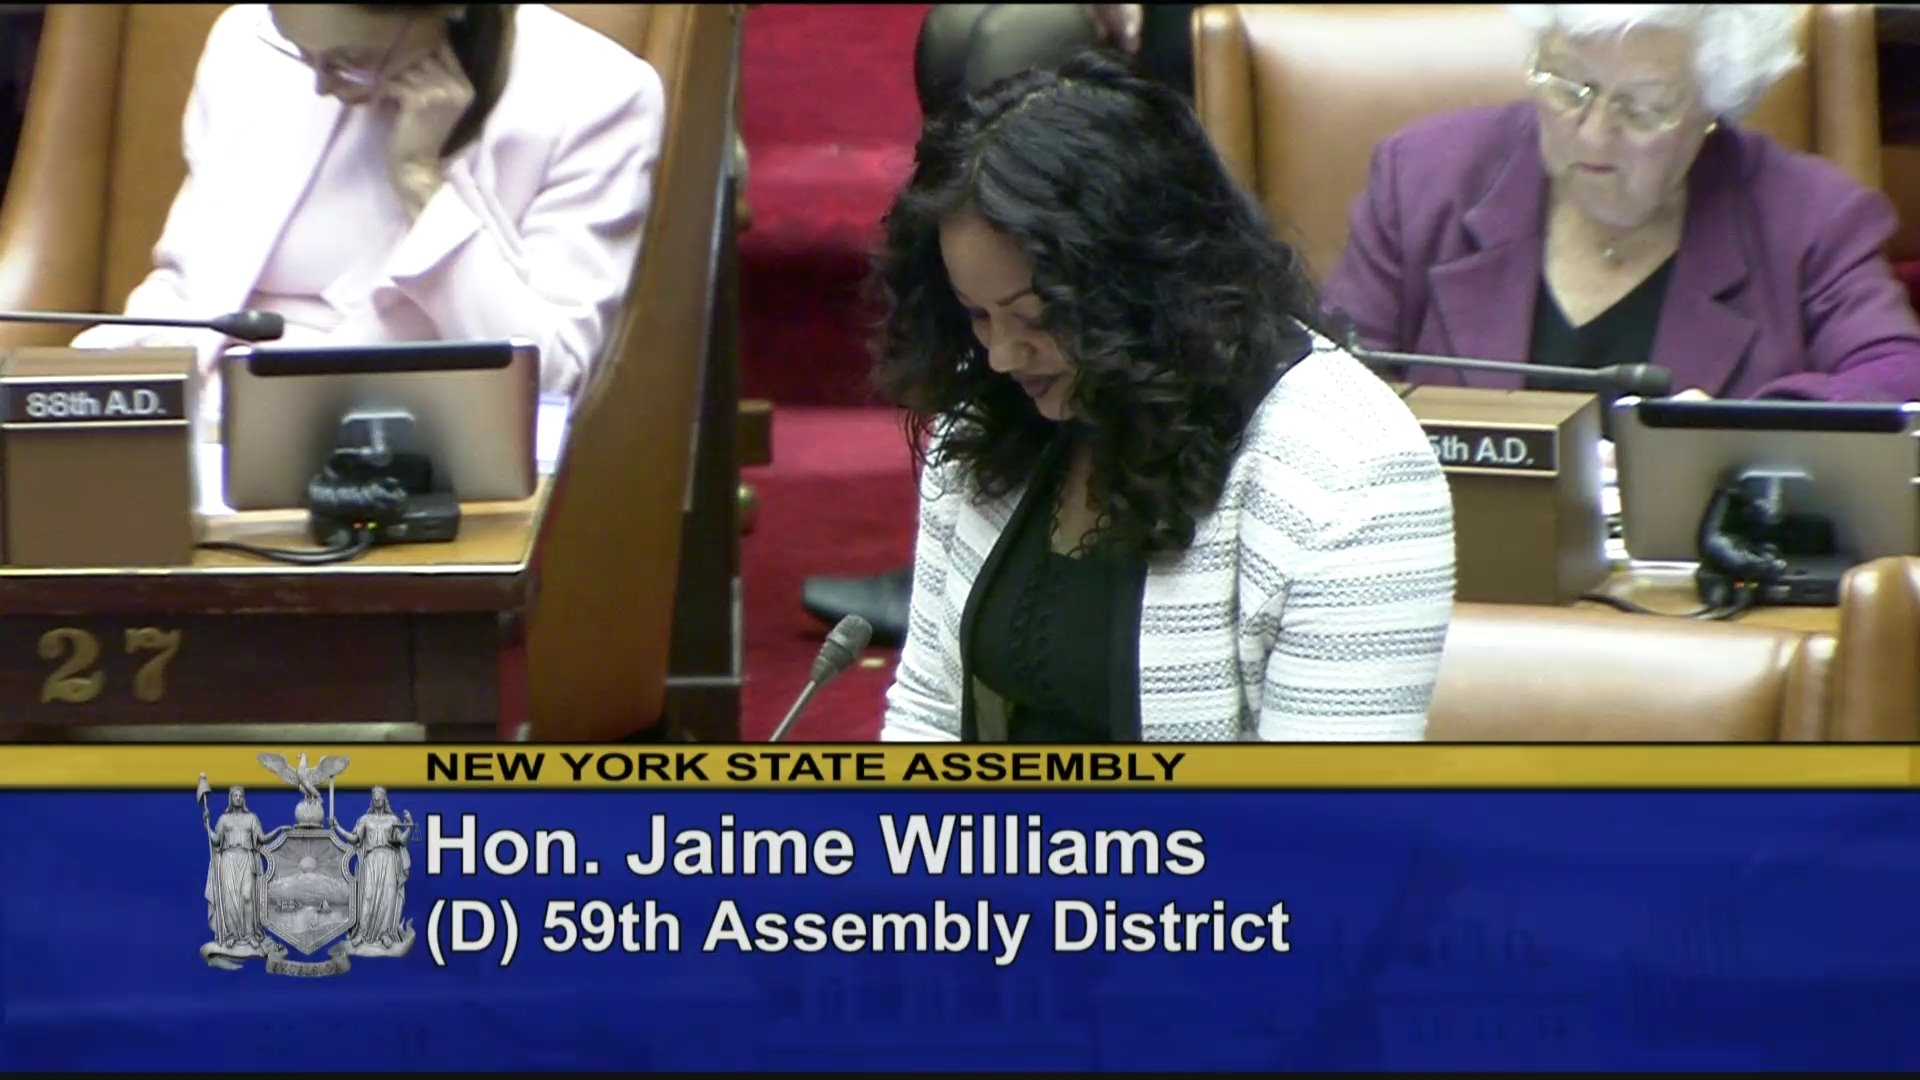 Welcoming Valerie Woodford to the Assembly